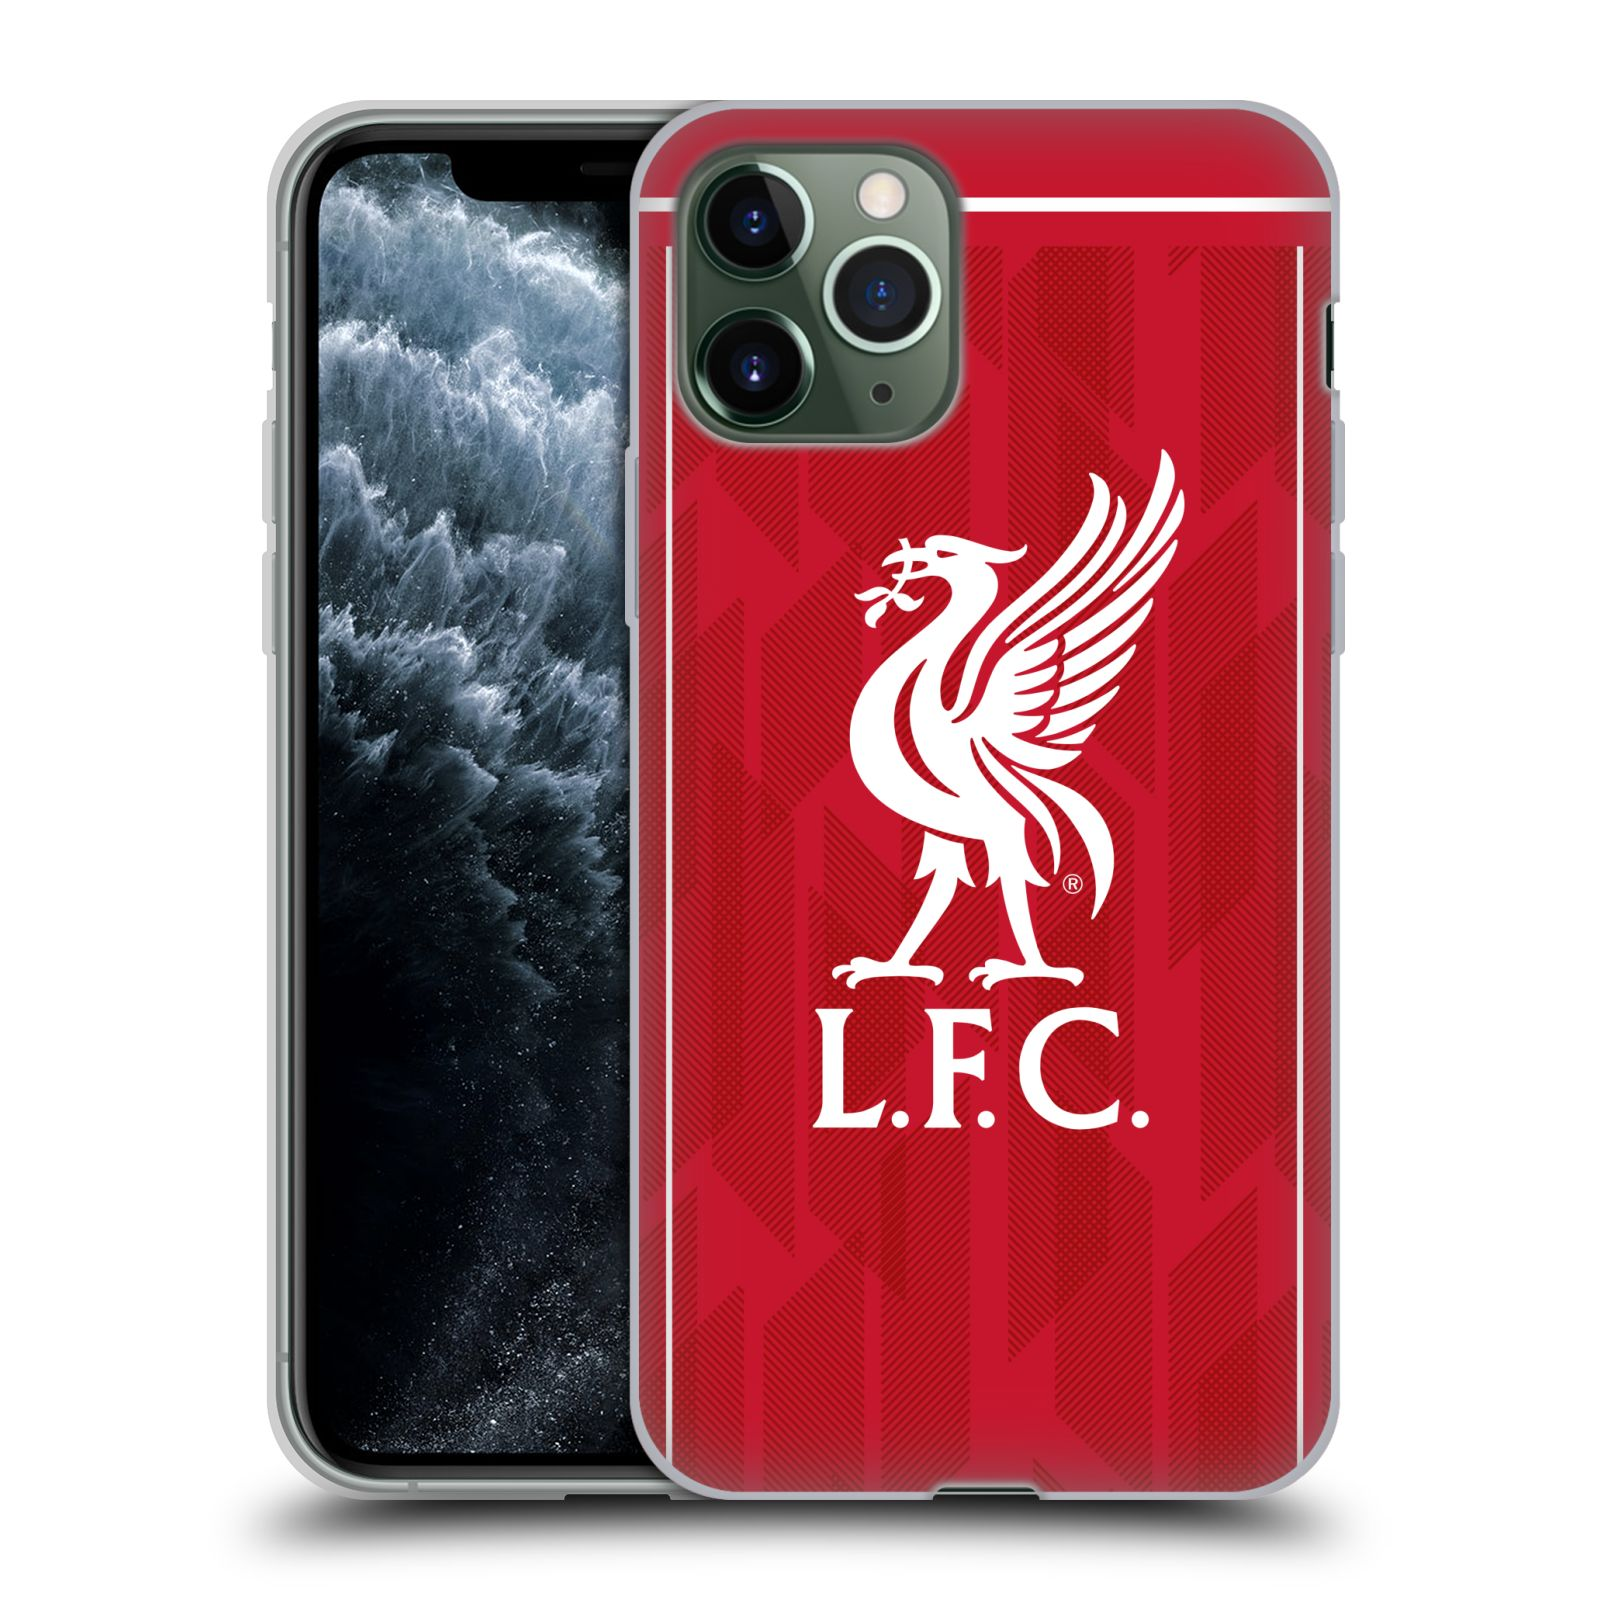 brno krytu na iphone 7 plus | Silikonové pouzdro na mobil Apple iPhone 11 Pro - Head Case - Liverpool FC - L.F.C. Home kit